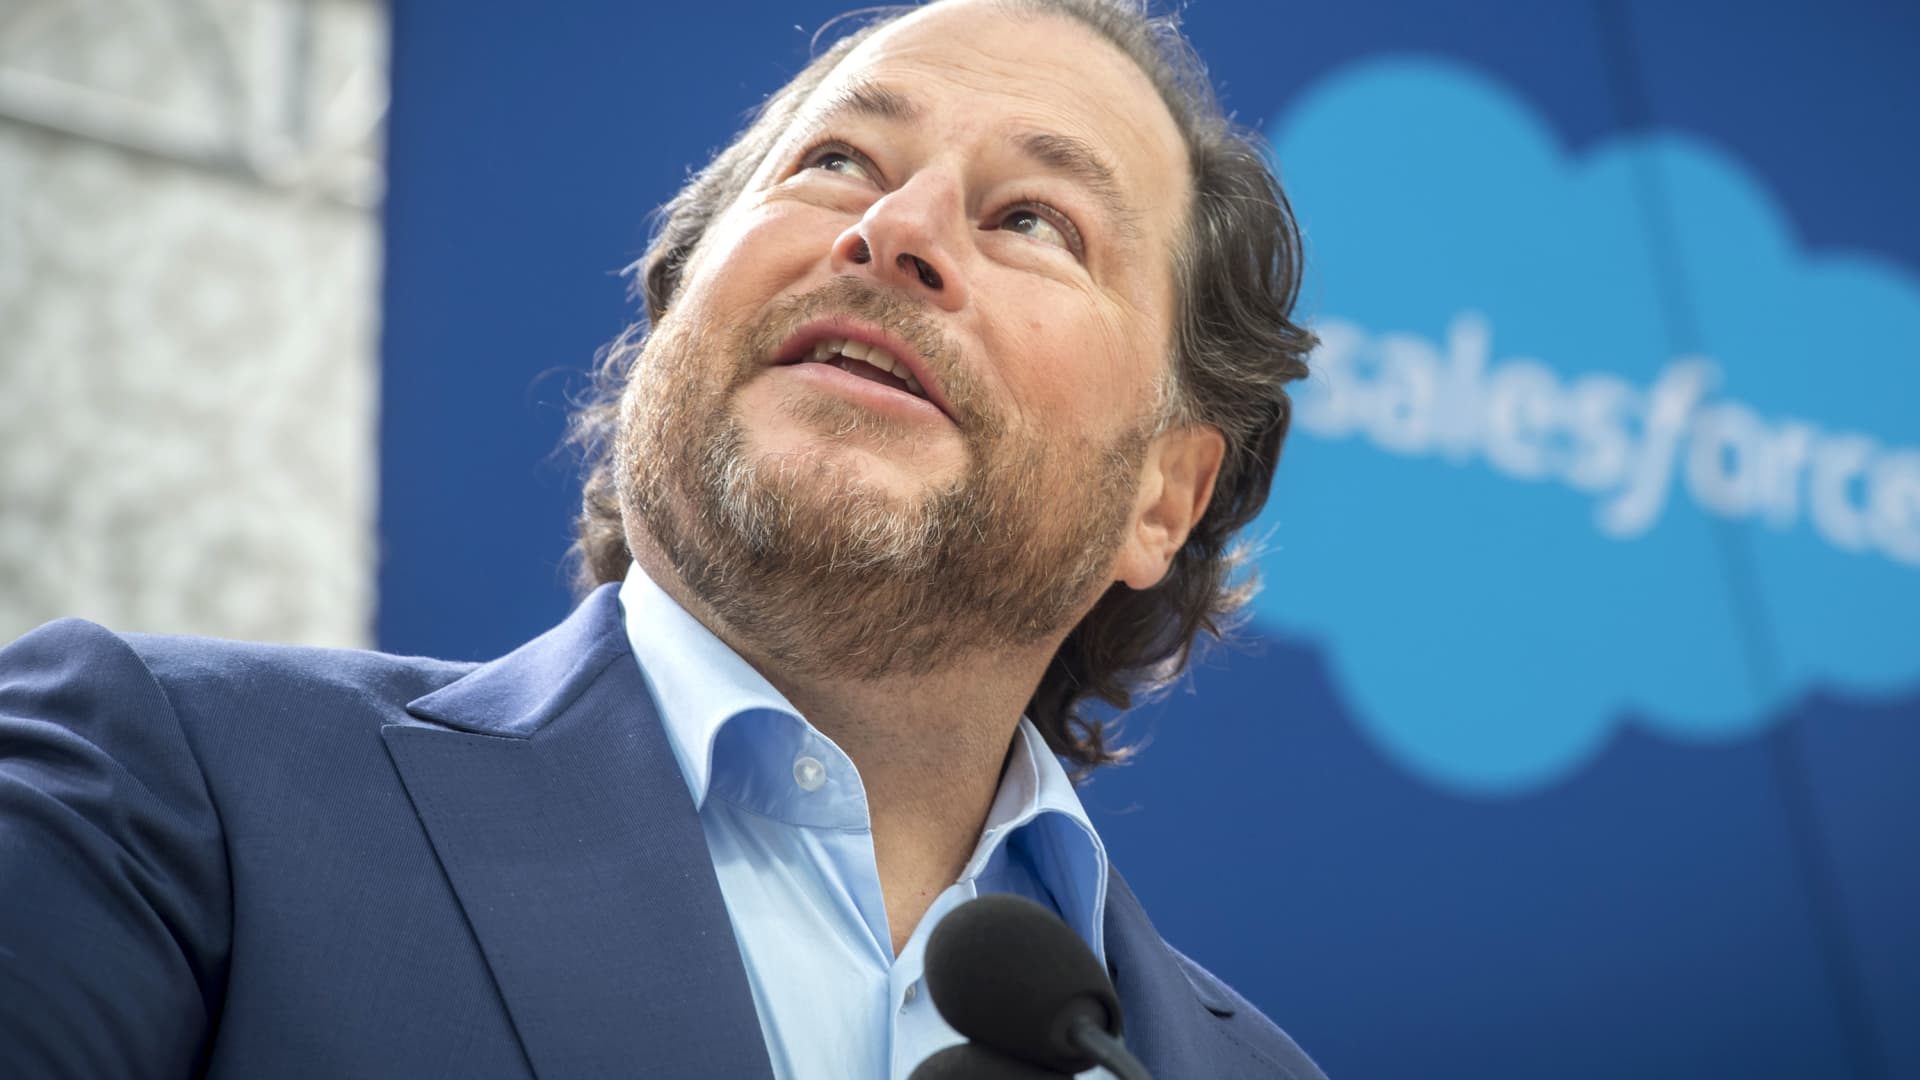 Marc Benioff, chairman and chief executive officer of Salesforce.com speaks during the grand opening ceremonies for the Salesforce Tower in San Francisco on May 22, 2018.